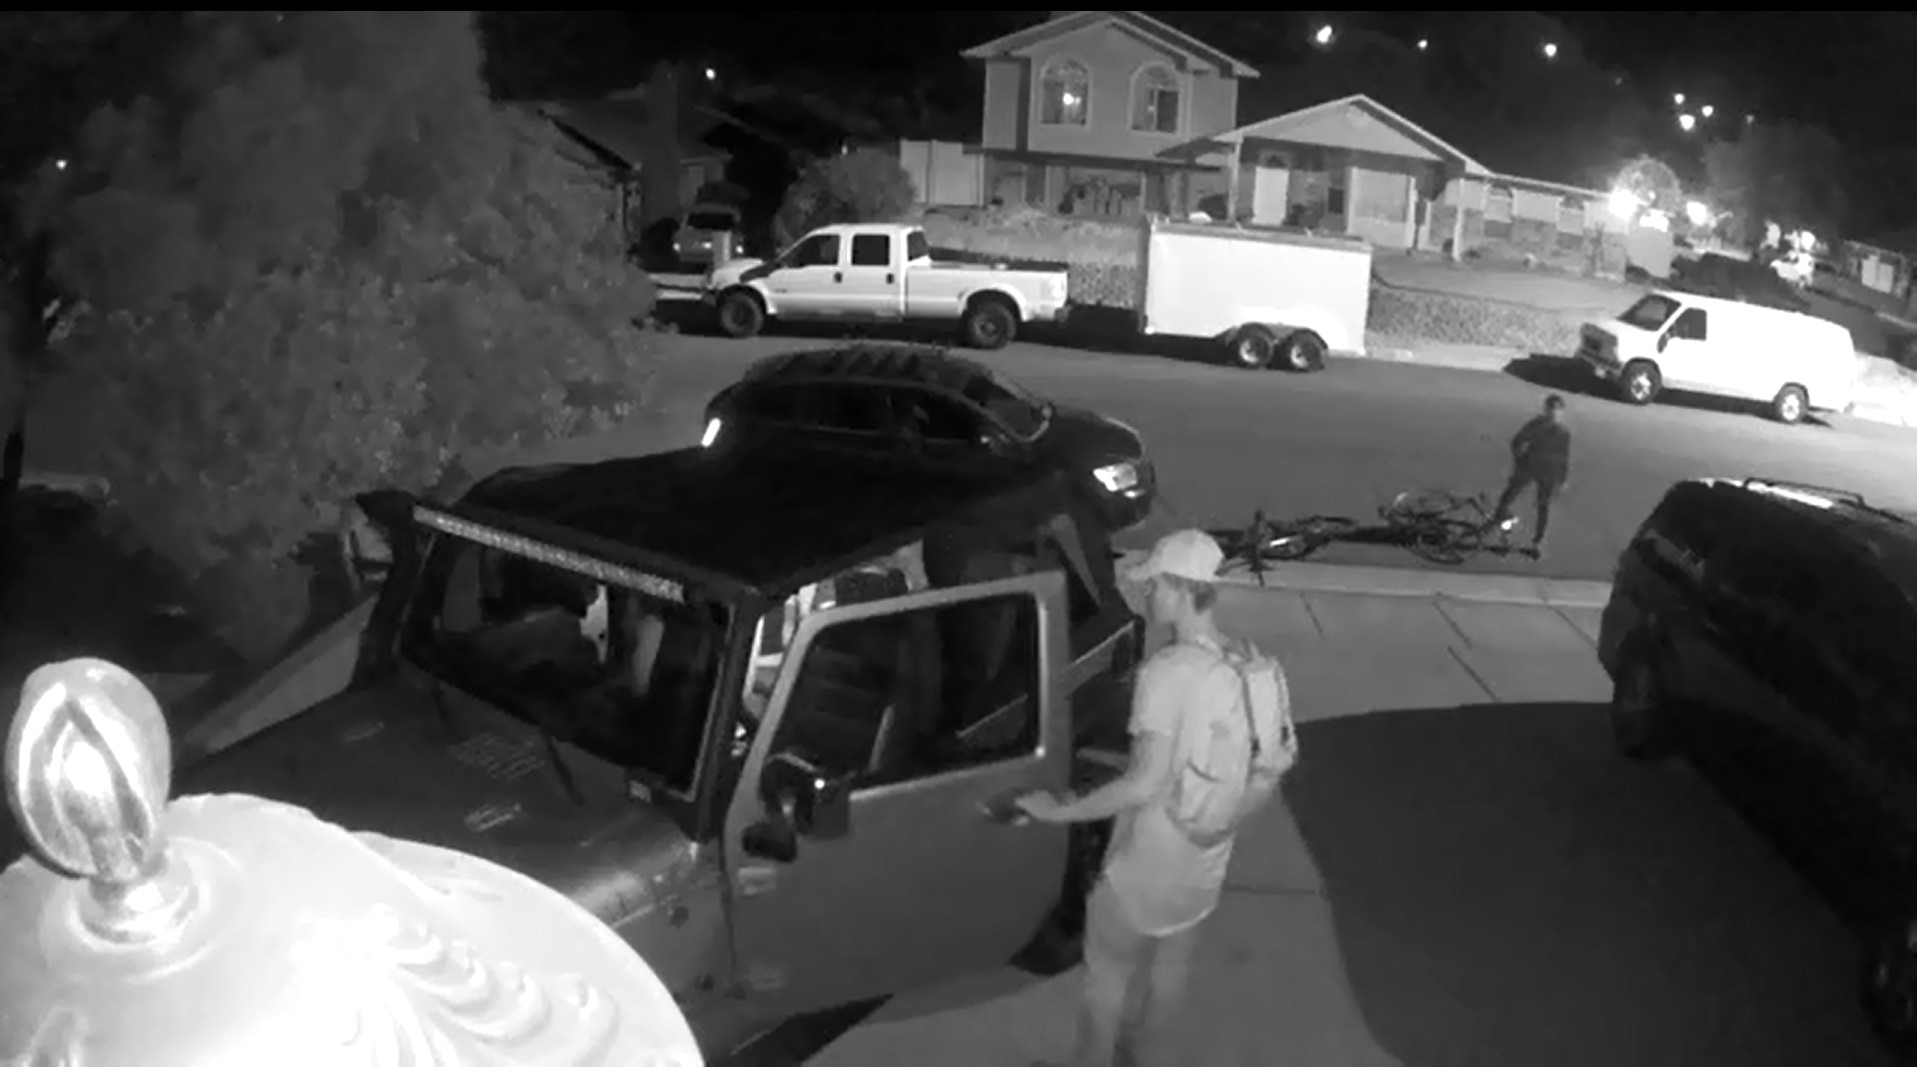 surveillance video shows suspected vehicle burglars in the act at st